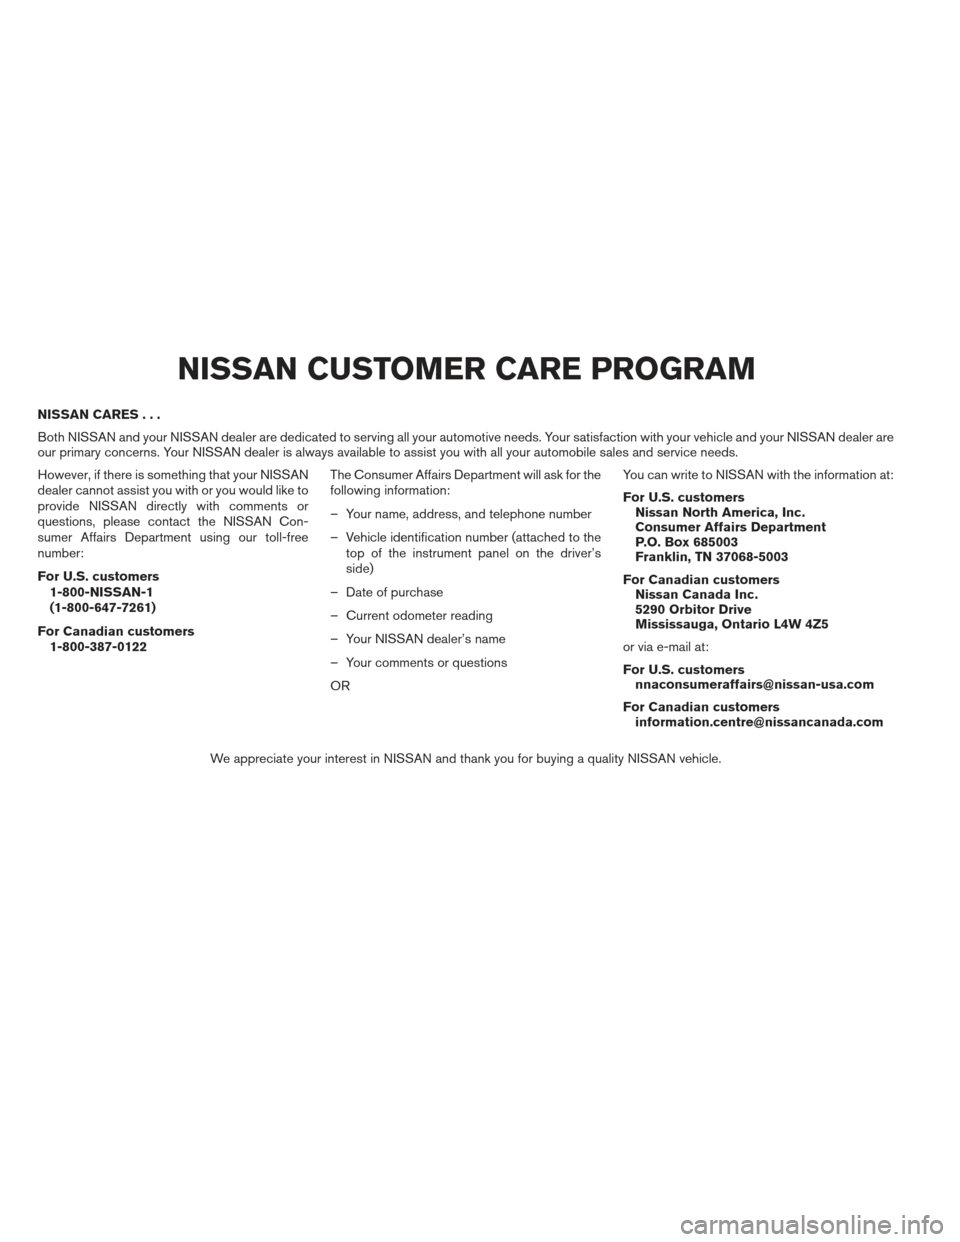 NISSAN ALTIMA COUPE 2012 D32 / 4.G Owners Manual, Page 5